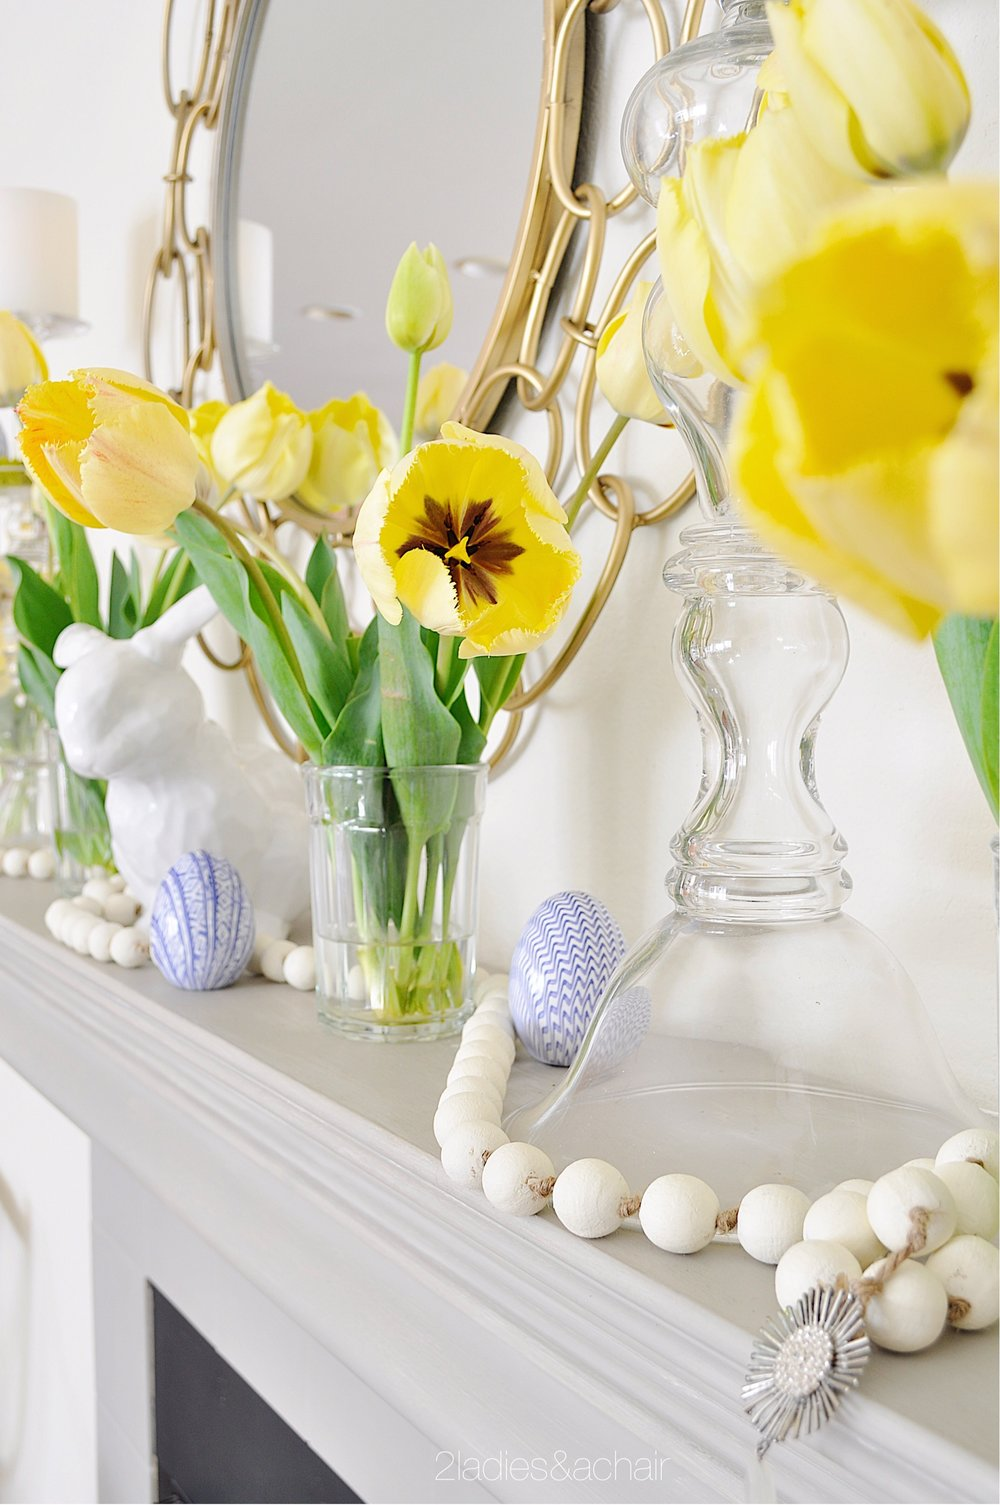 easter mantel decor IMG_1896.JPG